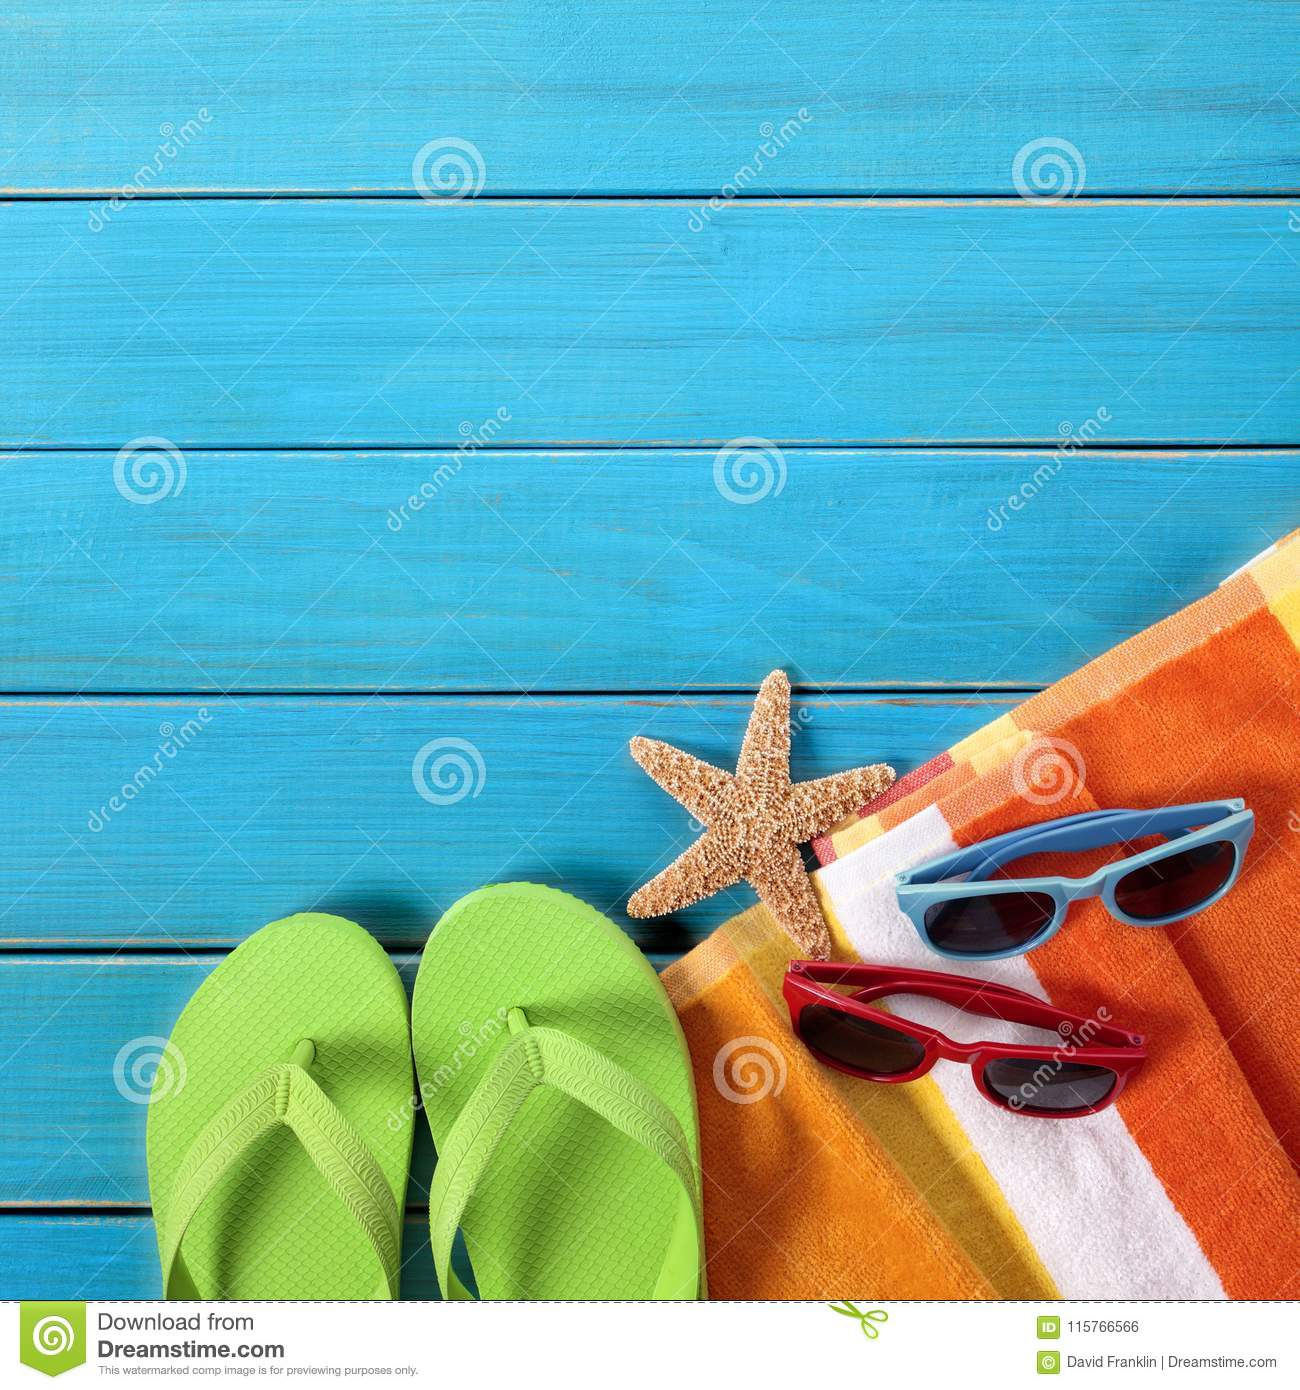 ebcc02f4e171d Beach Objects Flipflops Sunglasses Blue Wood Background Stock Photo ...